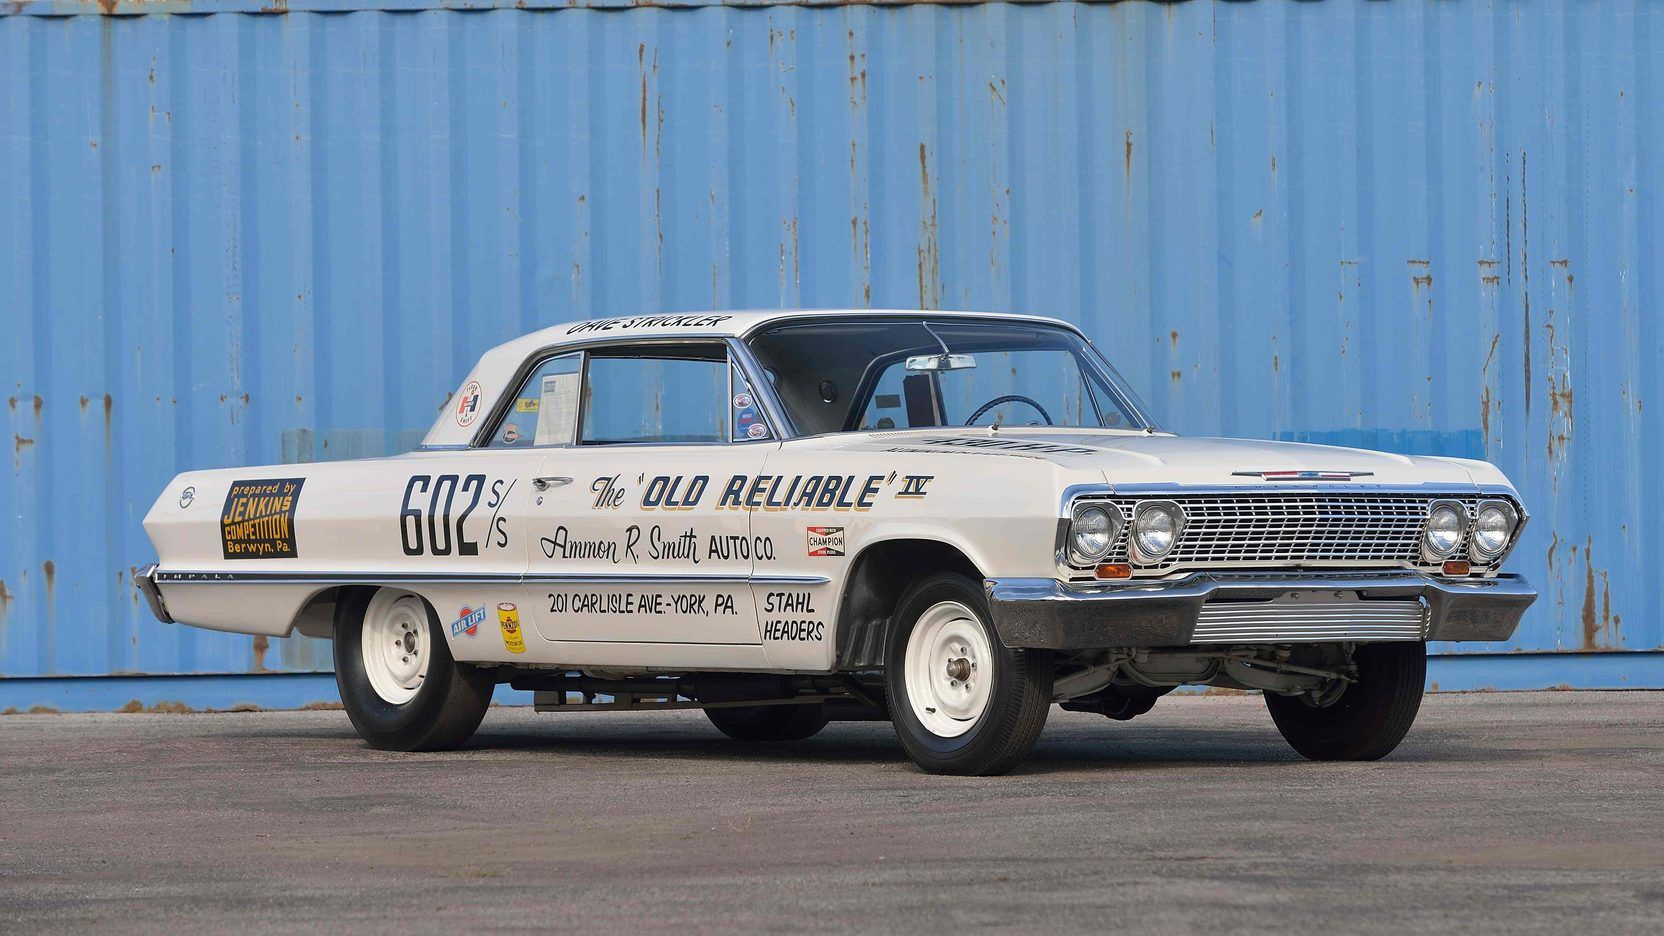 Cars and more chevy impala chevy impalas vehicles drag racing racing - Find This Pin And More On Impala 1963 Chevrolet